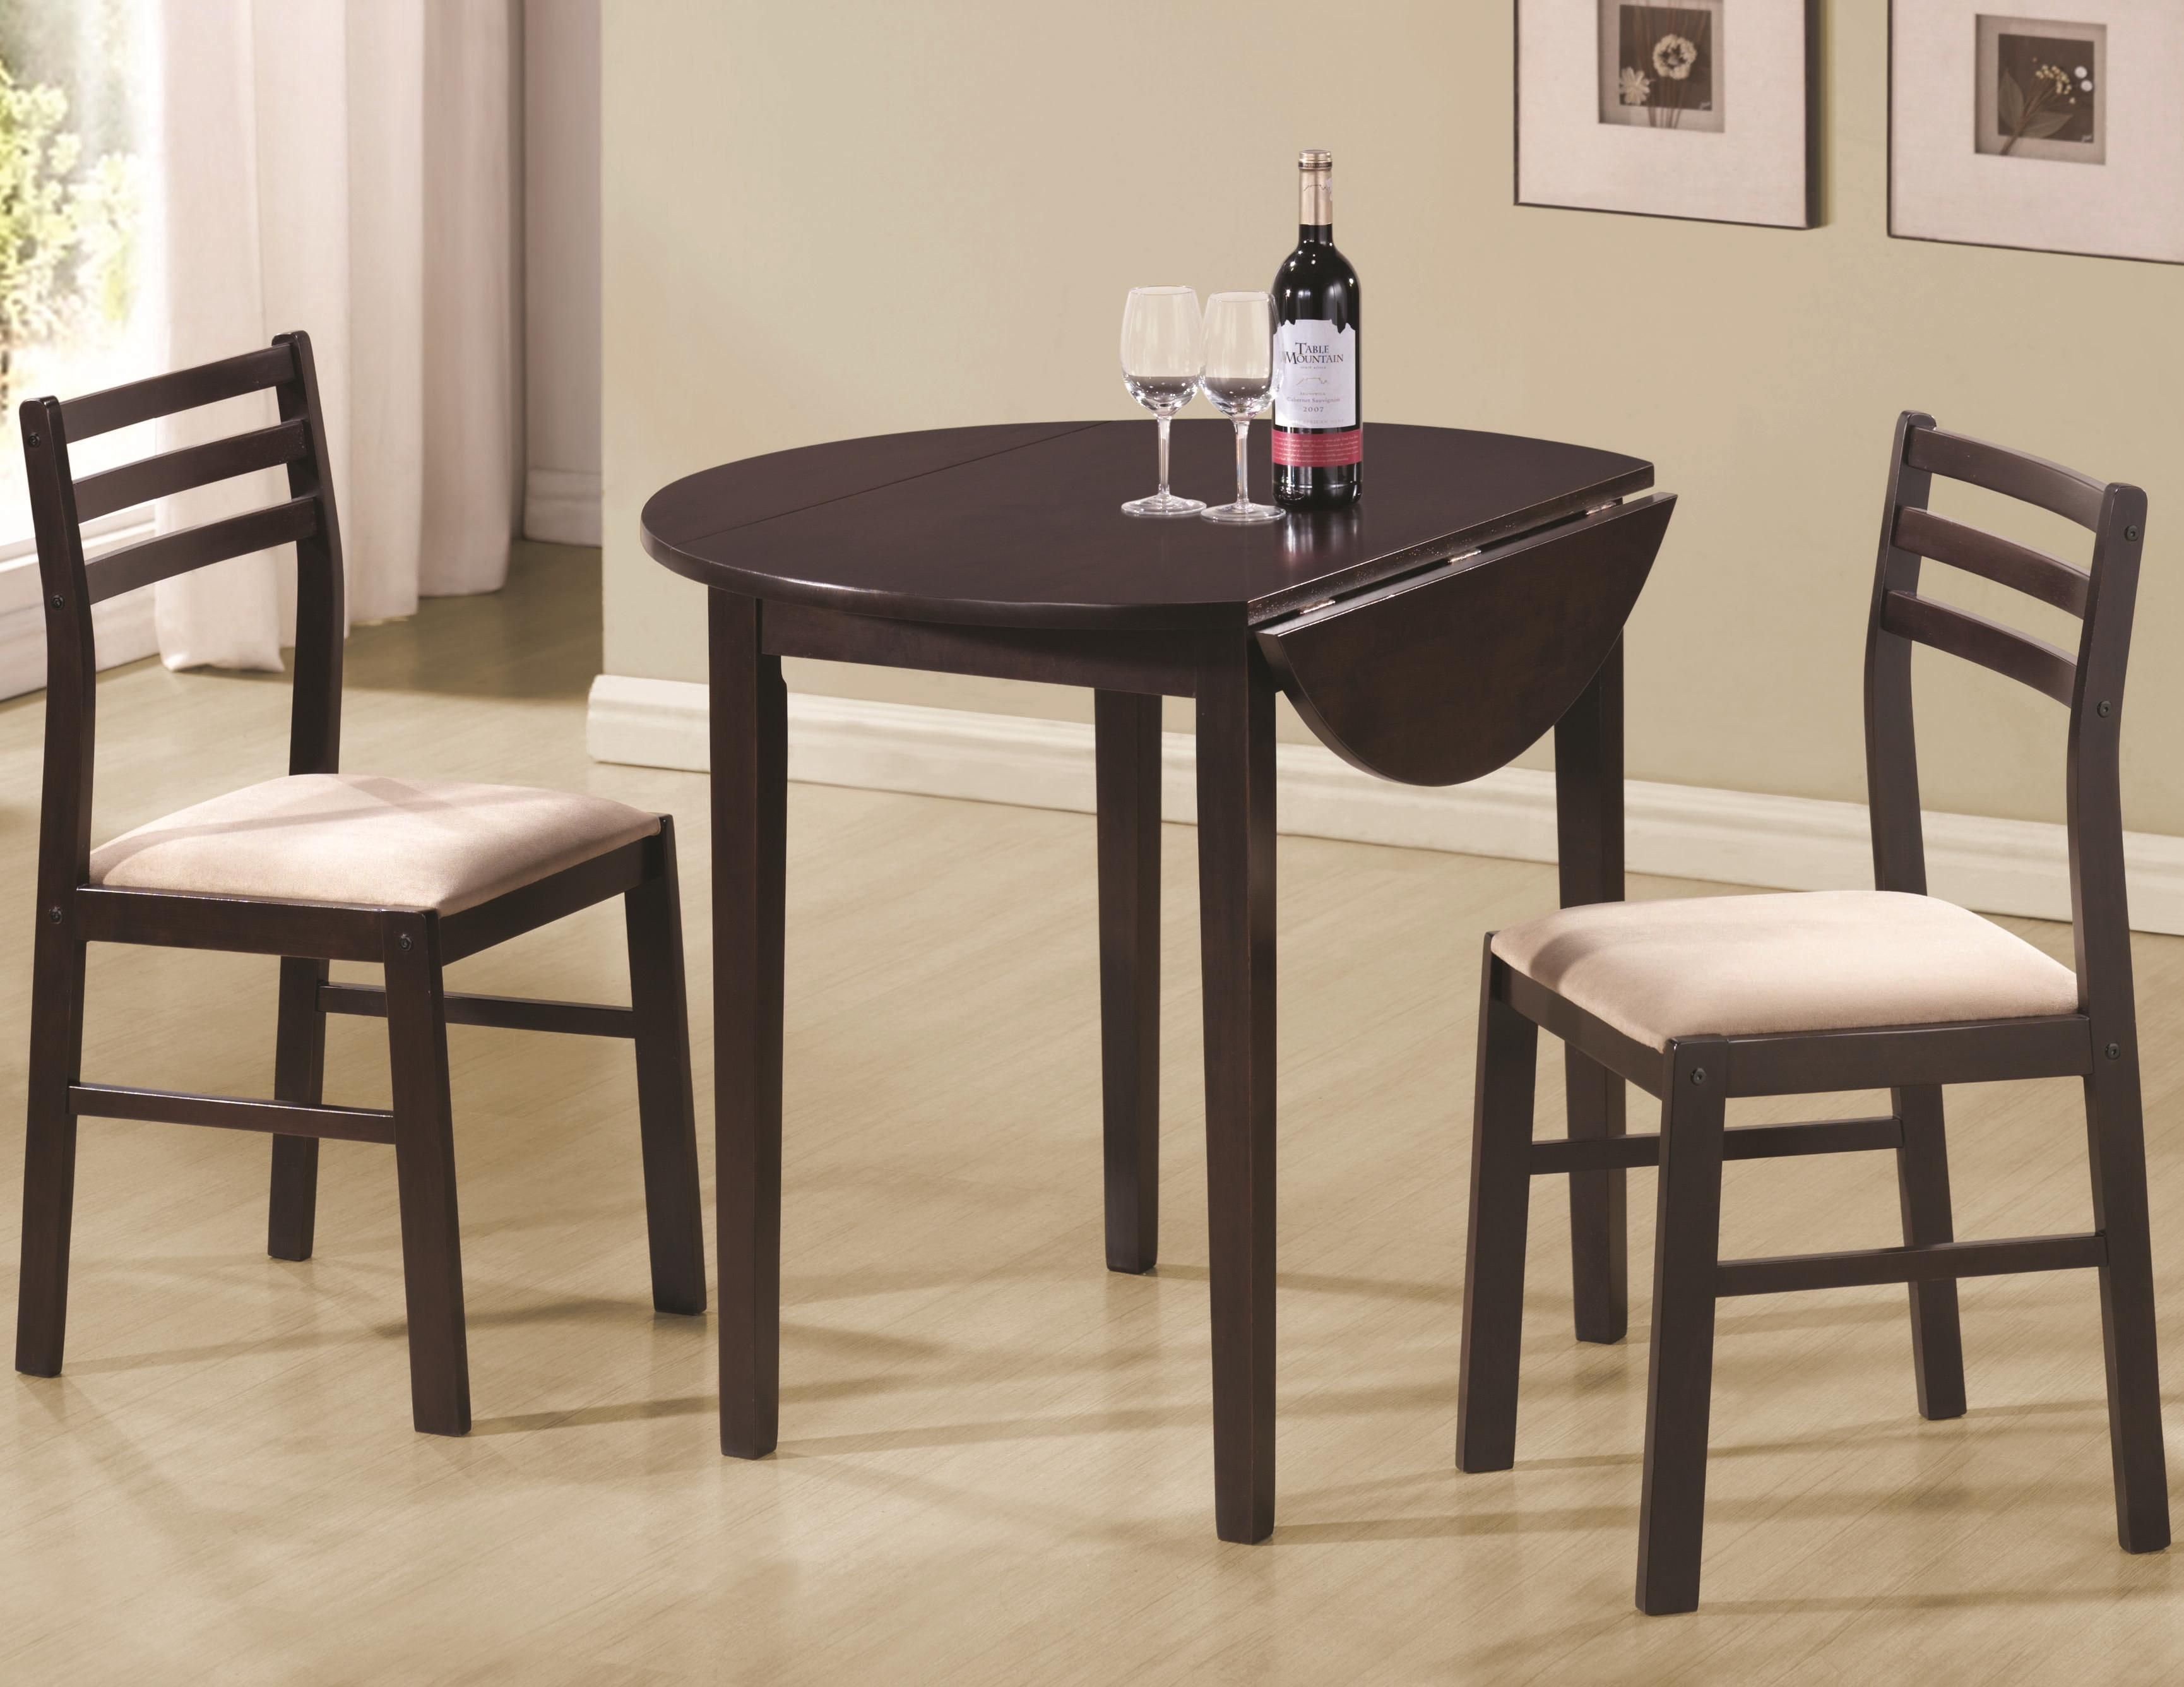 This Three Piece Table And Chair Set Is A Perfect Option For Your